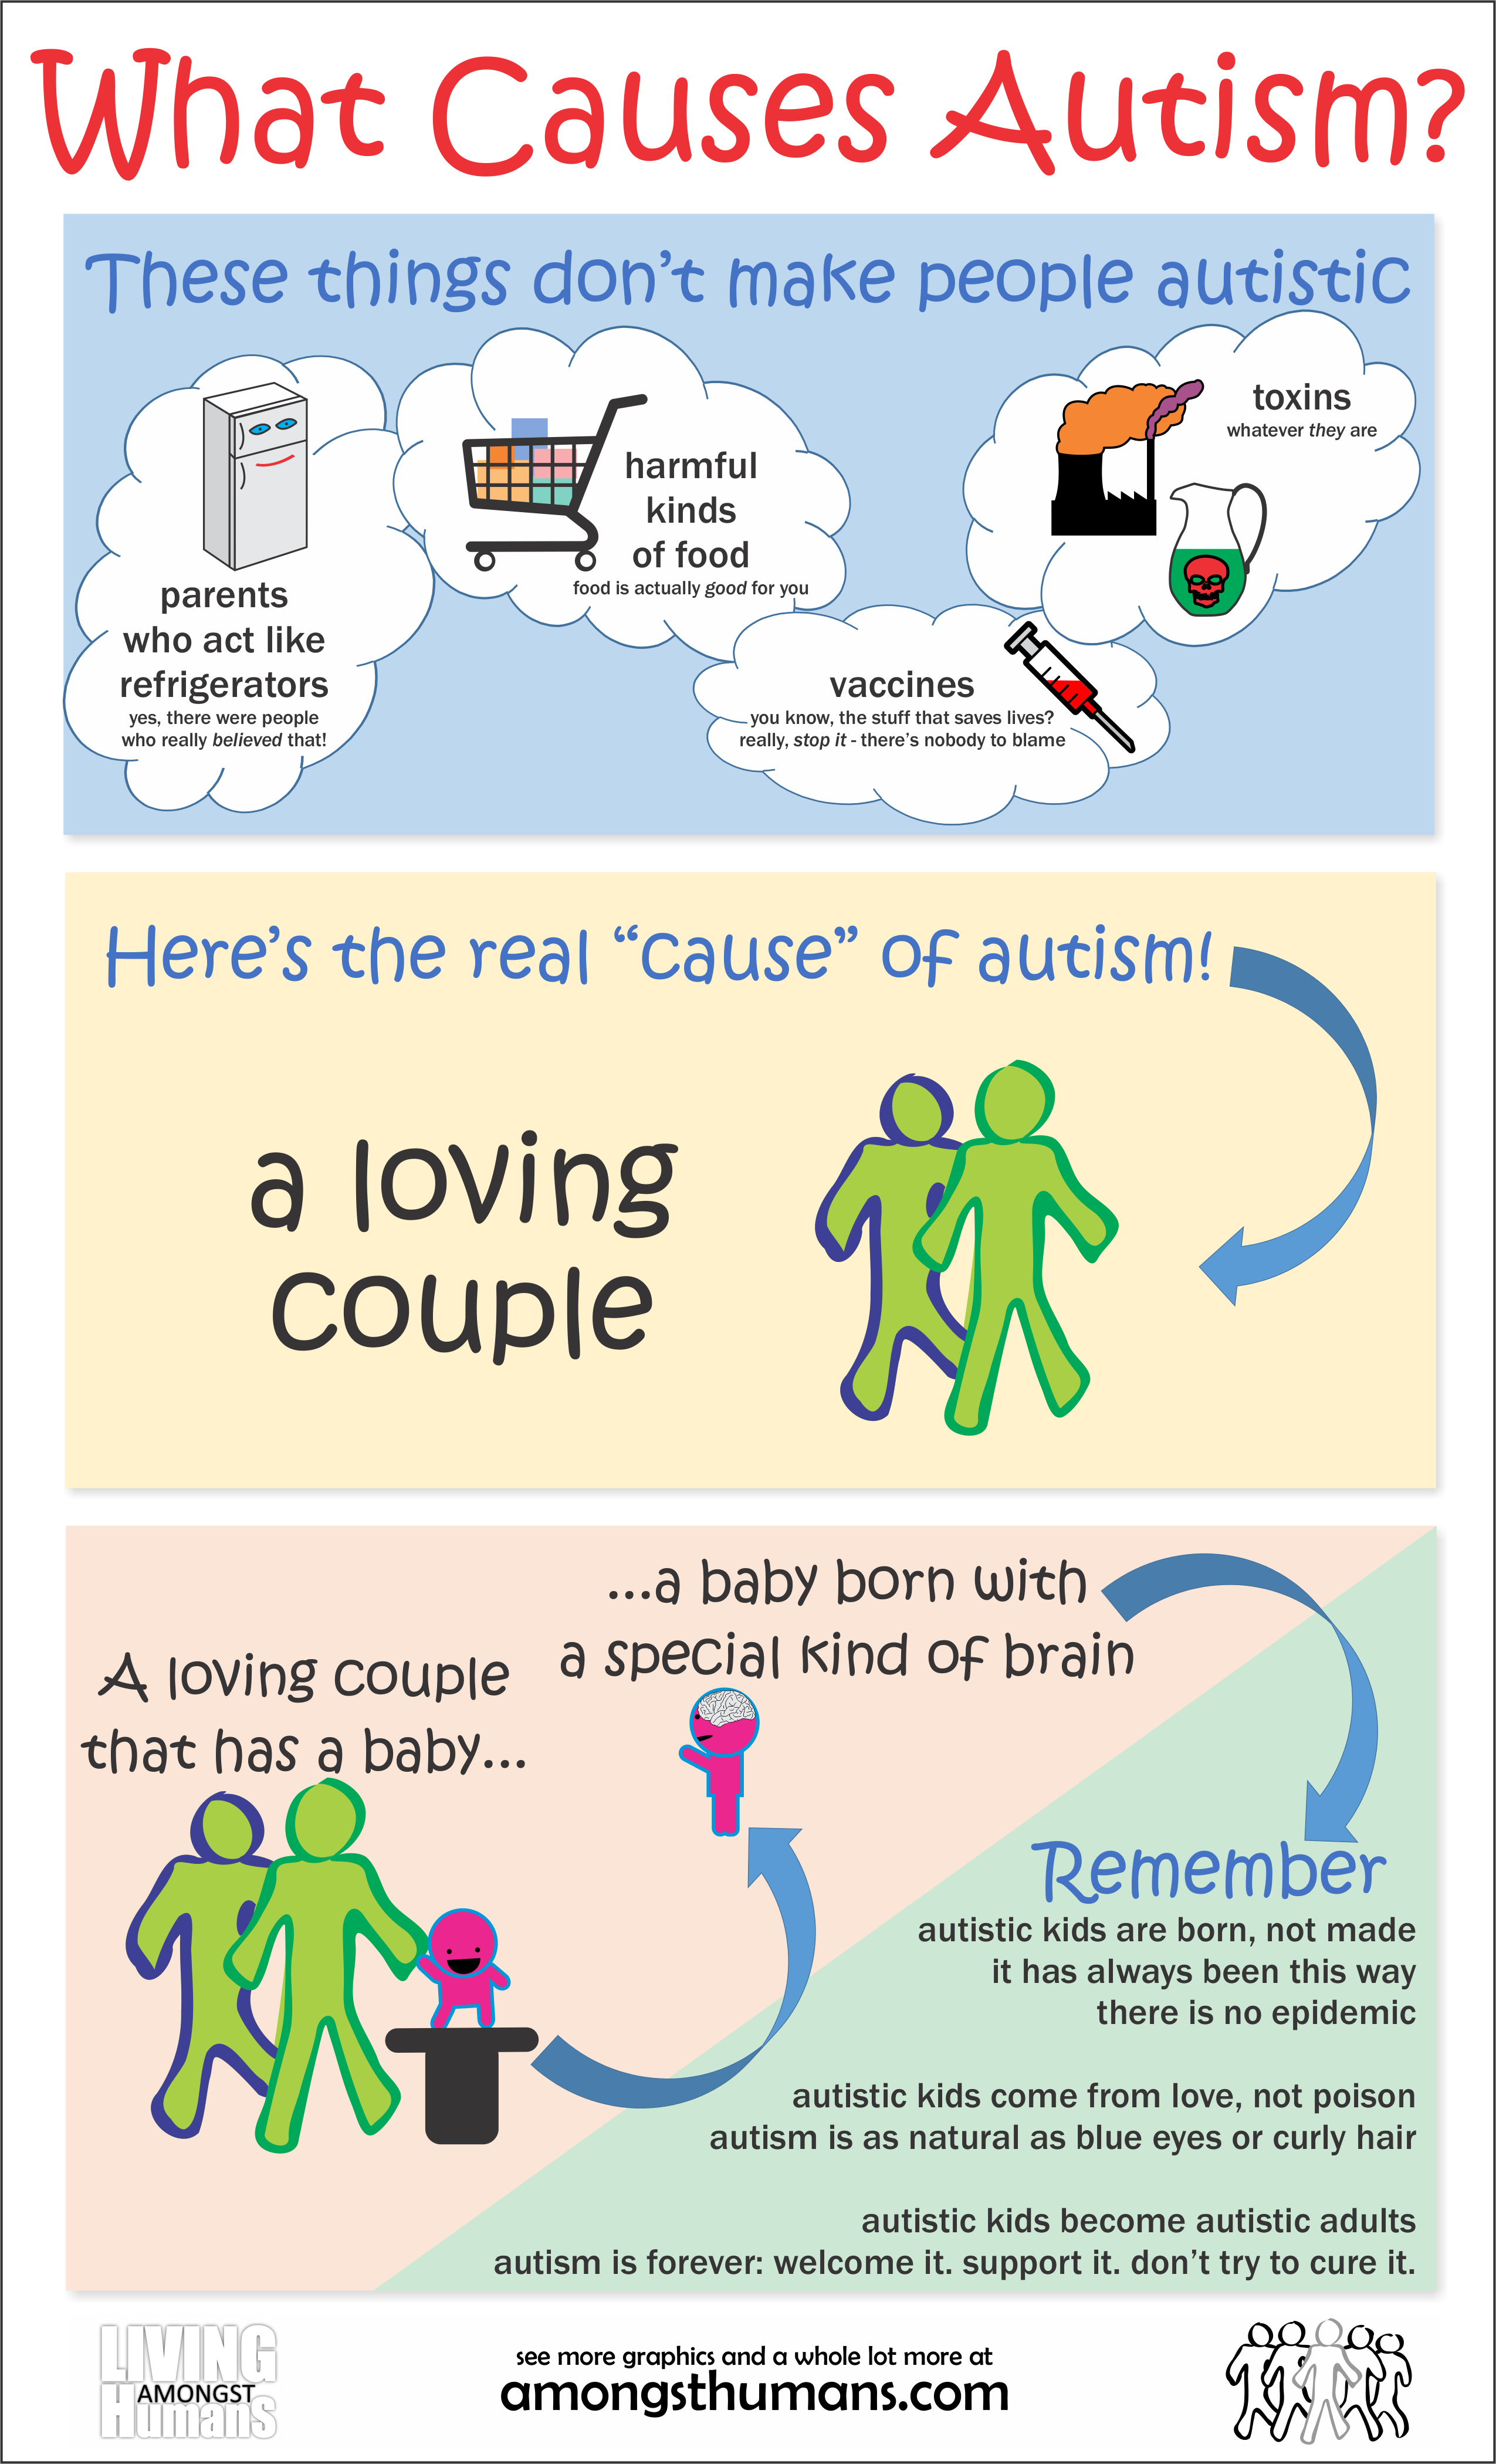 What Causes Autism - Infographic